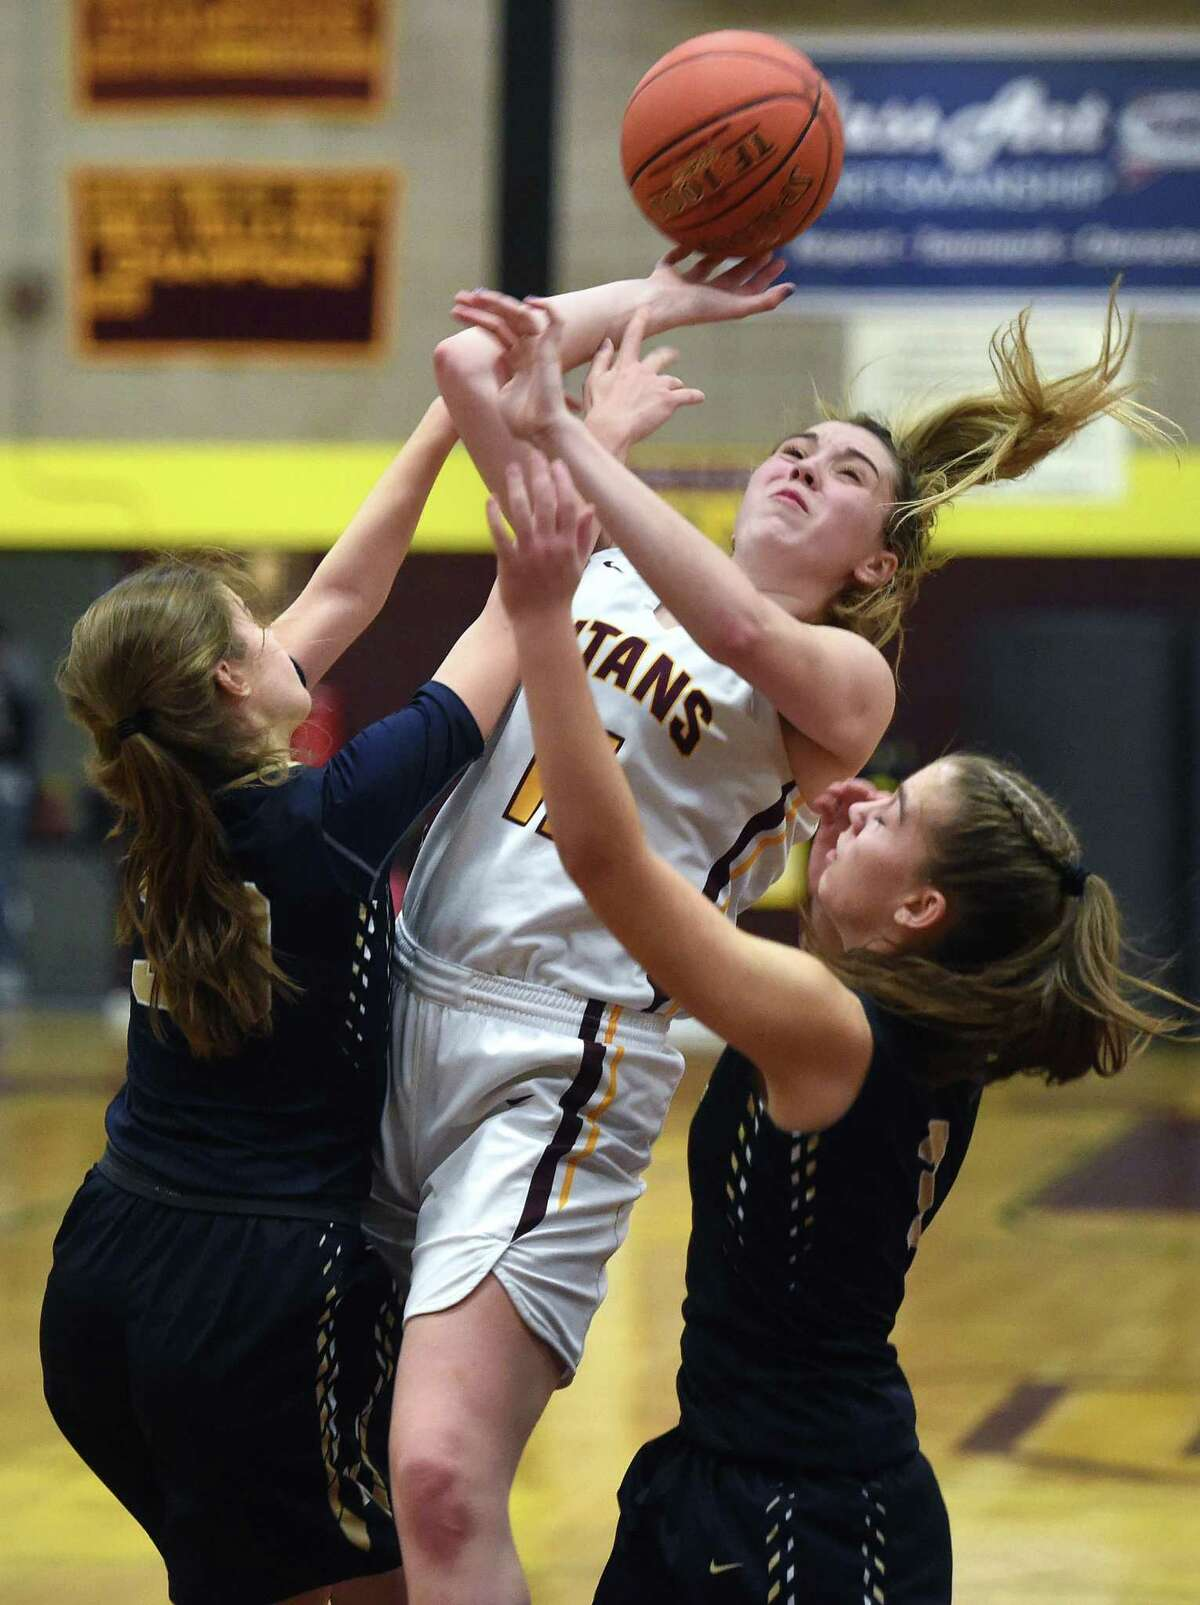 Maddi Larkin (center) of Sheehan is covered by Marliese Zocco (left) and Karissa Zocco of Newington as she goes to the basket in Wallingford on January 20, 2020.